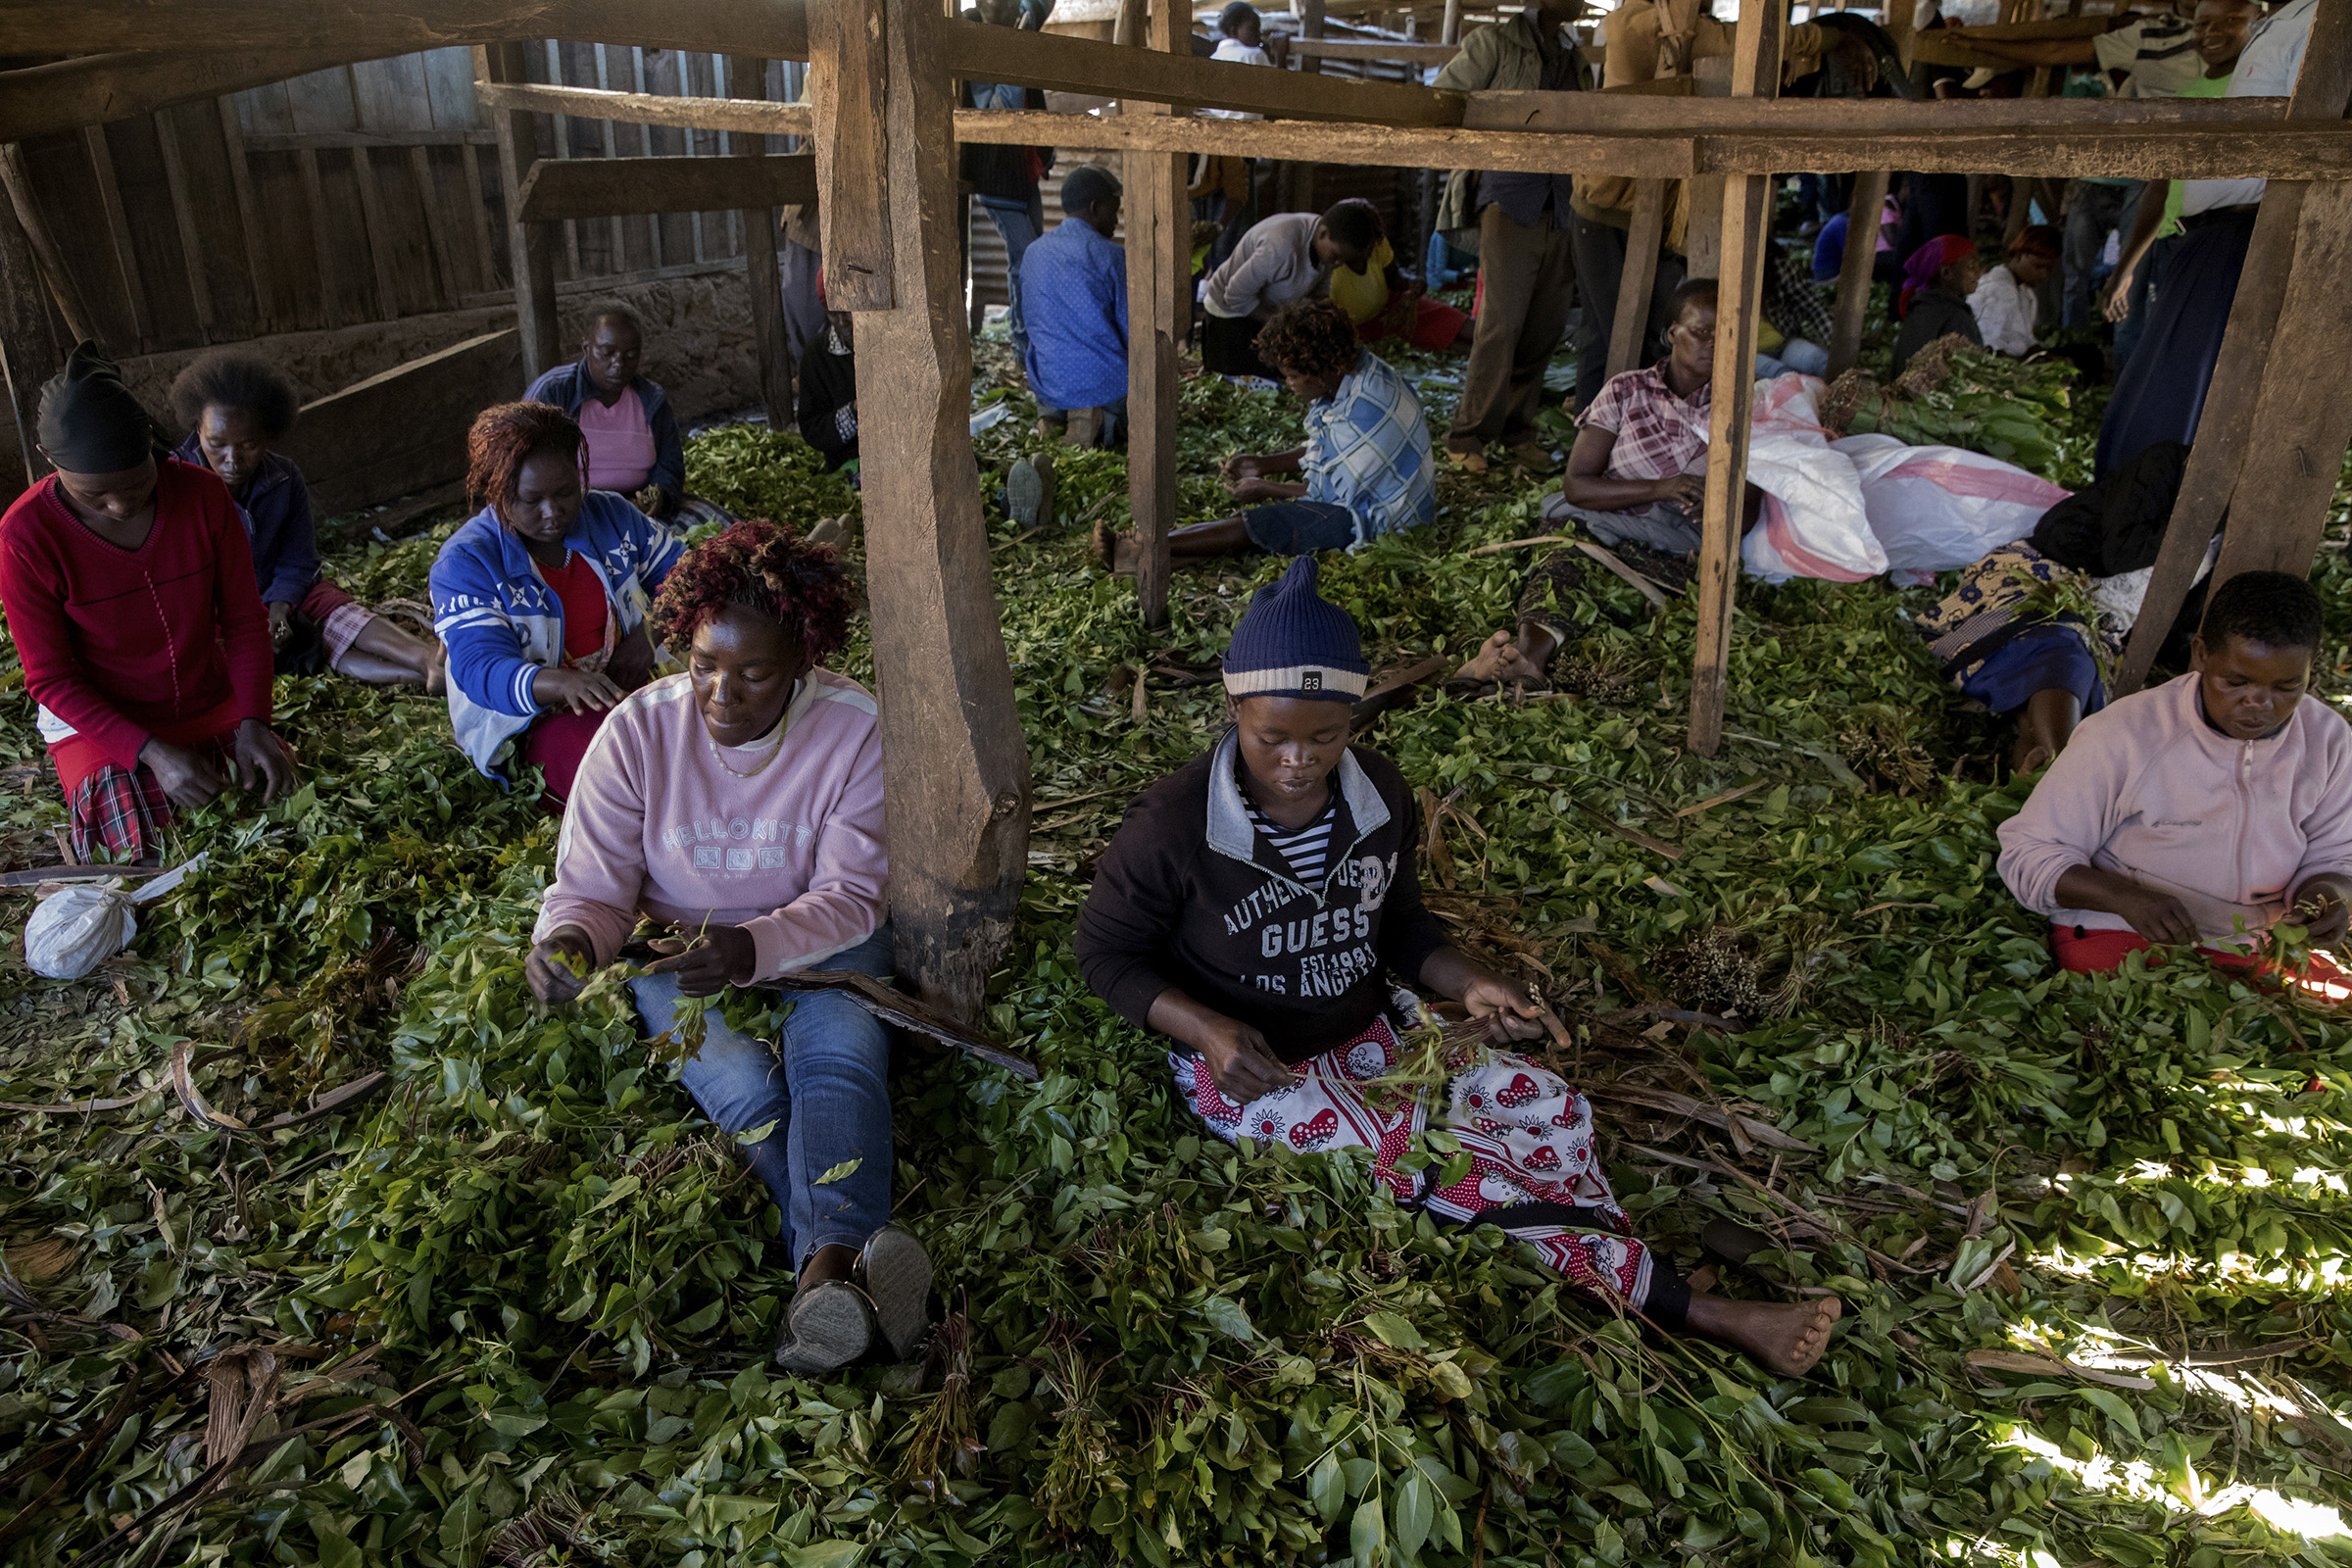 Women make packages of khat leaves using banana leaves to wrap the drug at Athiru Gaiti's (Atherogaitu) khat market in Kenya in 2017.